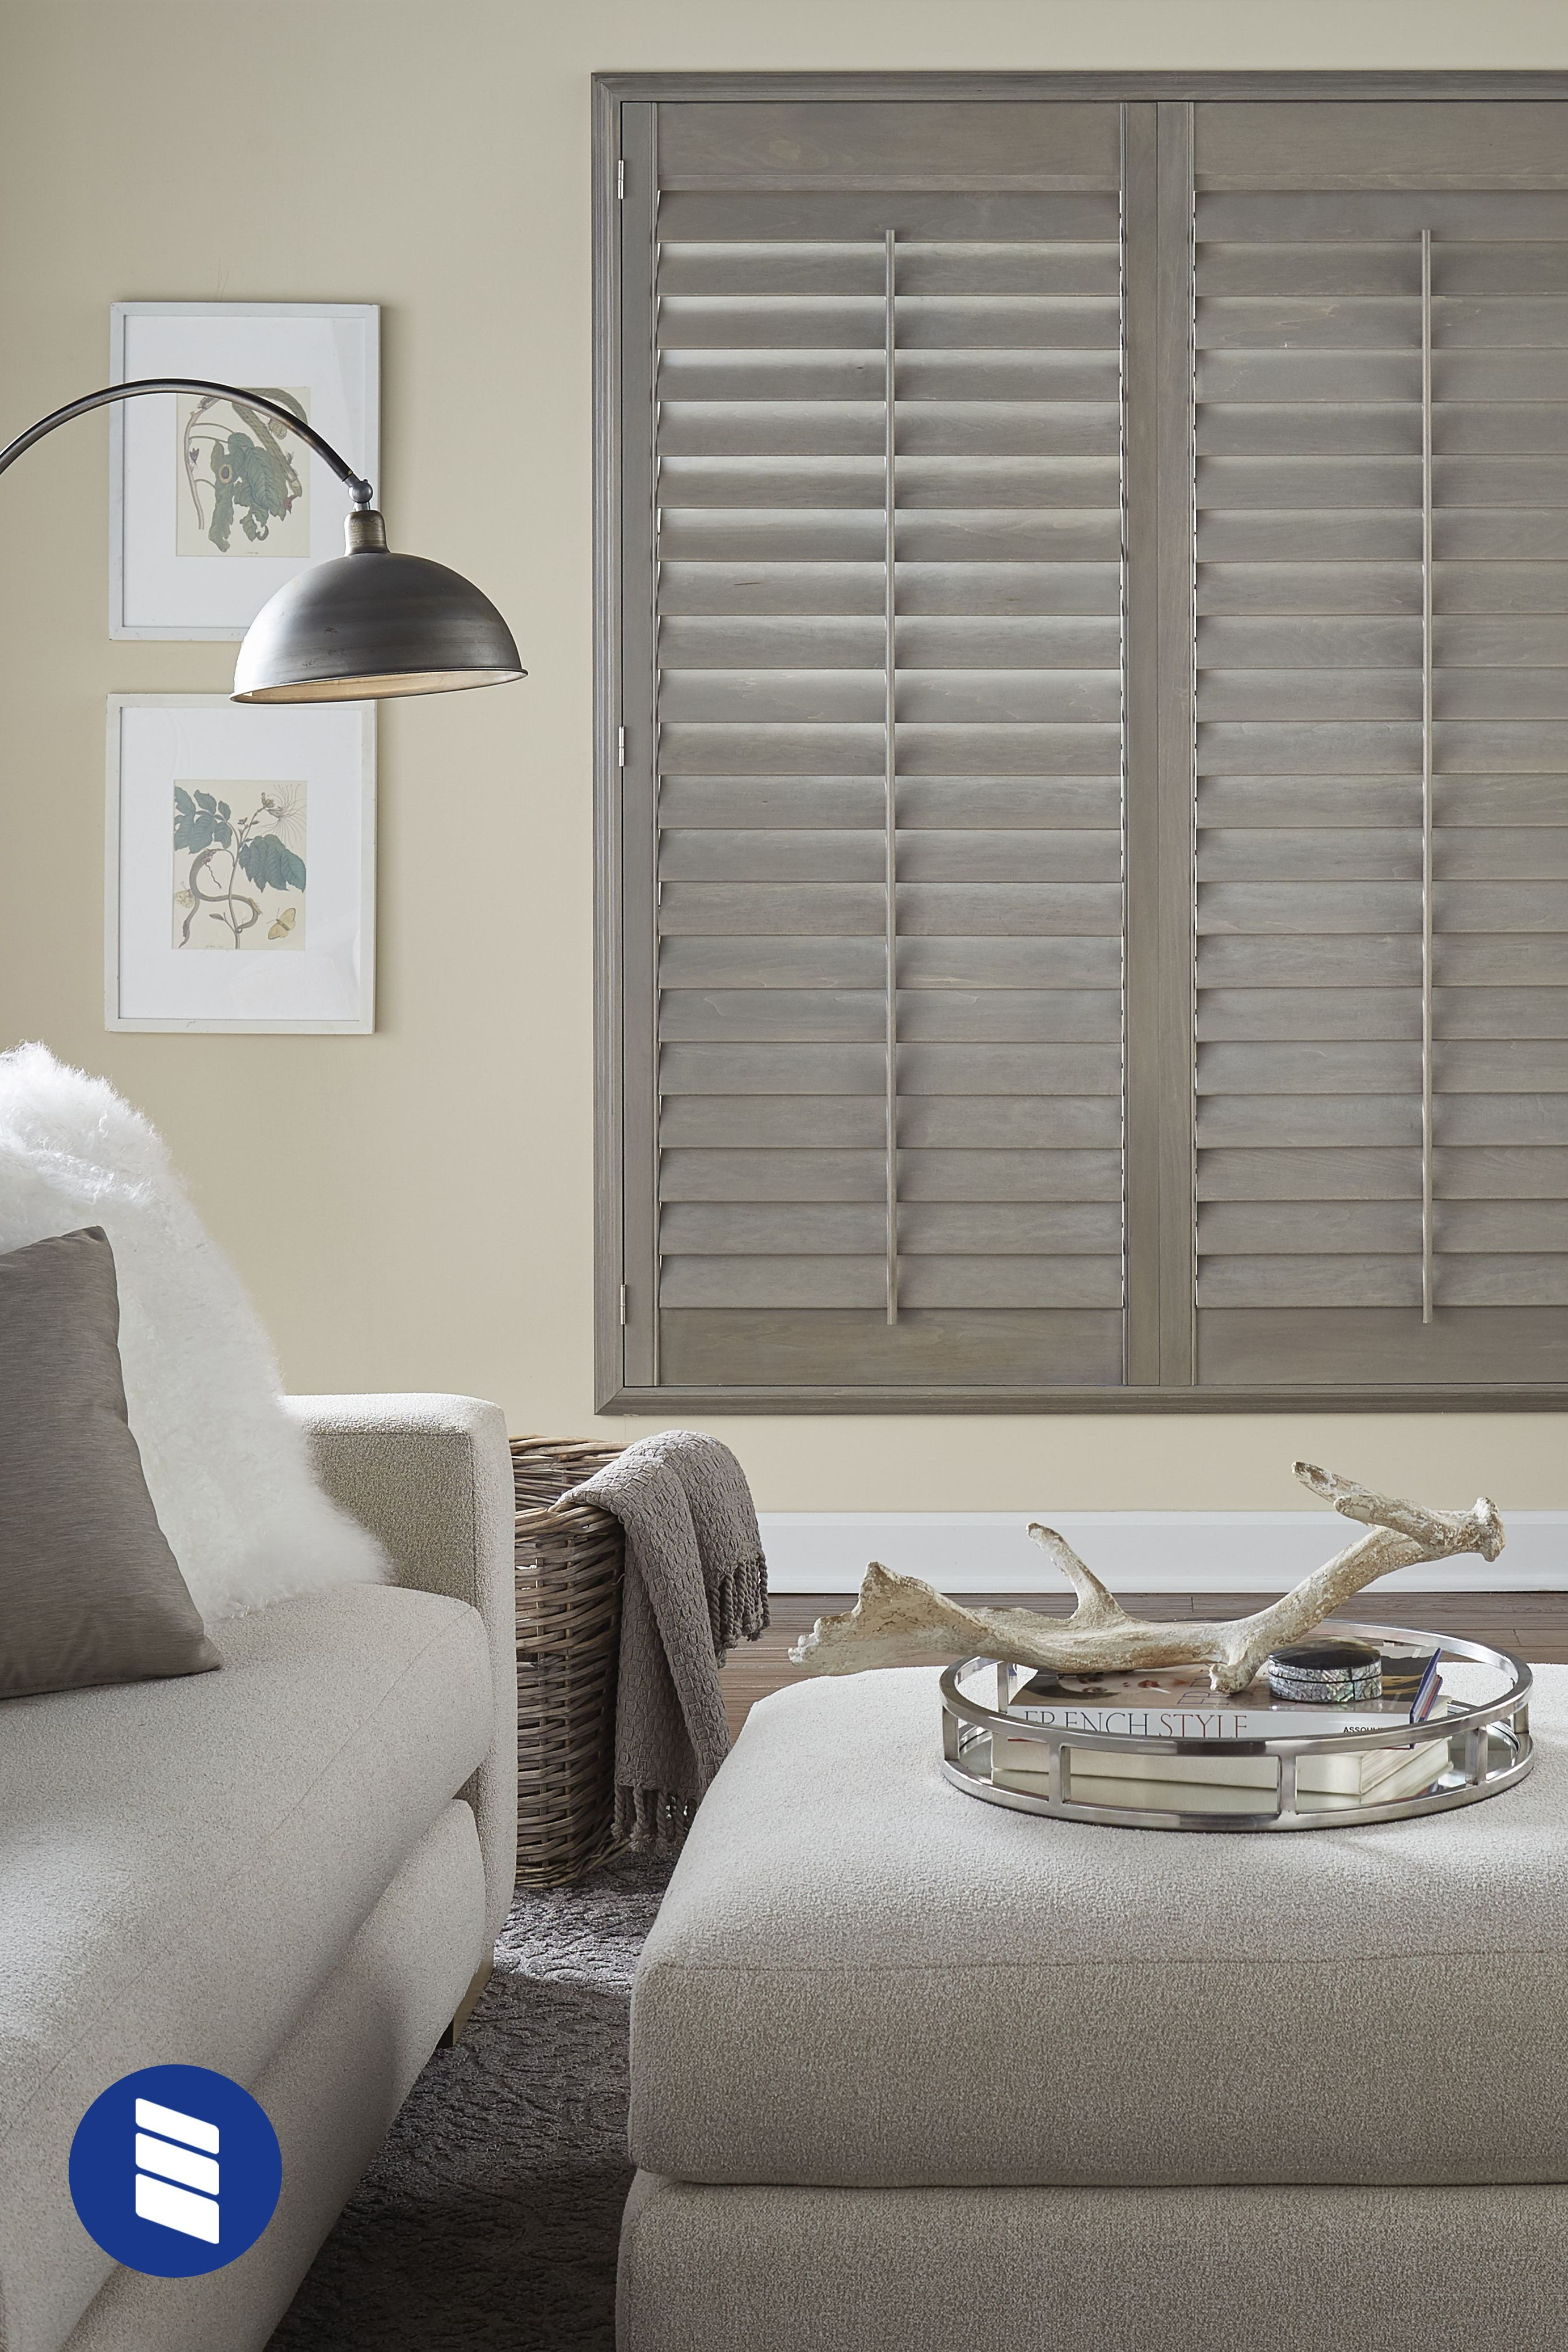 Achieve A Classic Picturesque Look With Signature Wood Shutters